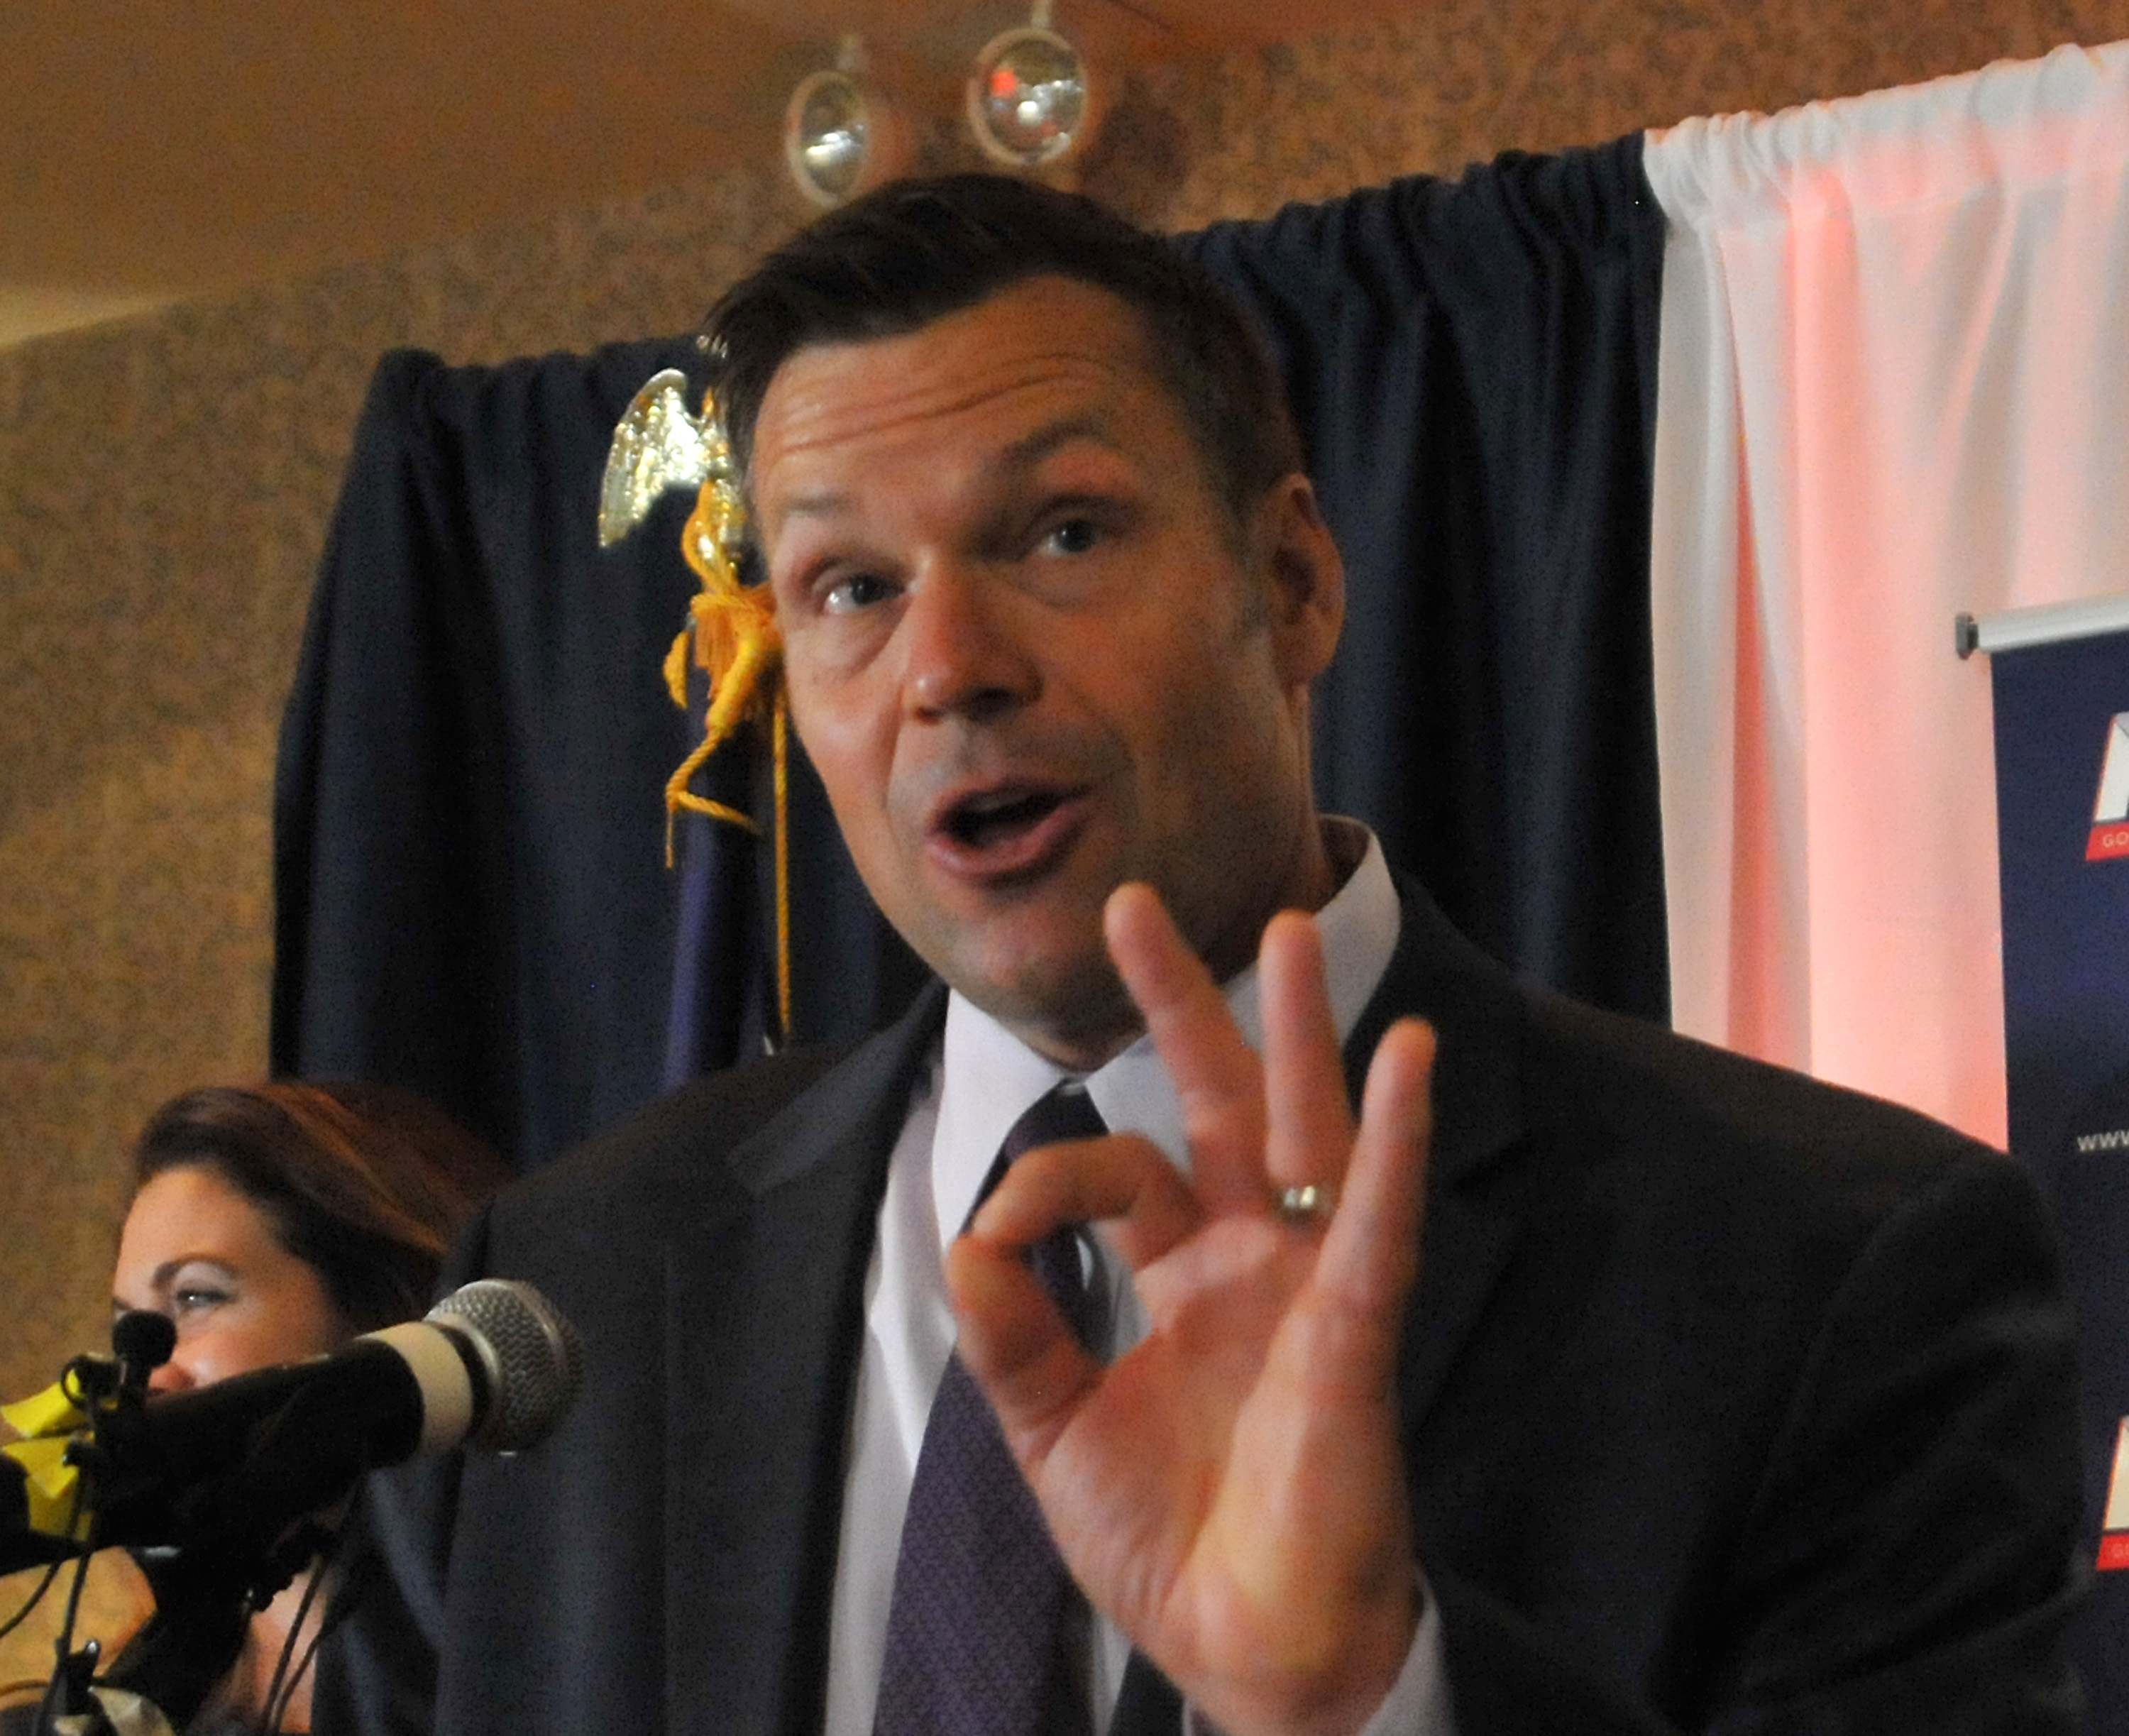 Republican primary candidate for Governor Kris Kobach, speaks to supporters just after midnight in a tight race with Jeff Colyer that is too close to call. (Photo by Steve Pope/Getty Images)